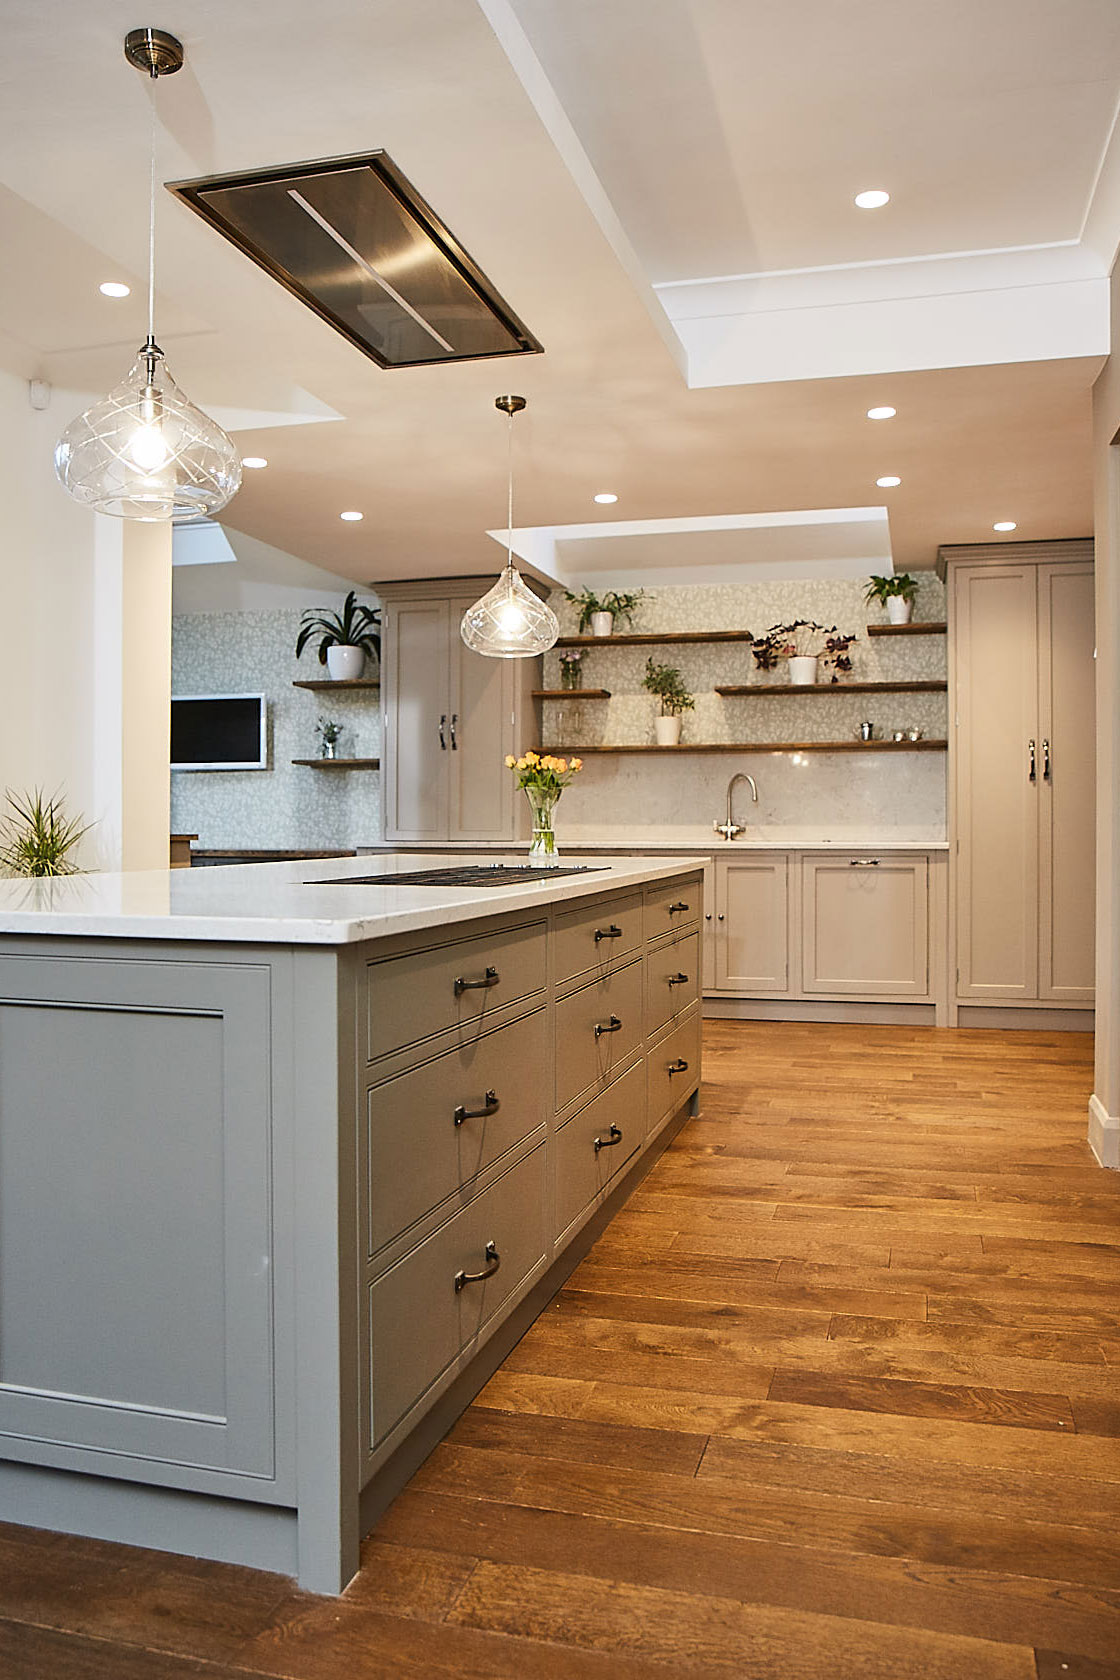 Traditional painted kitchen island with oak floor boards